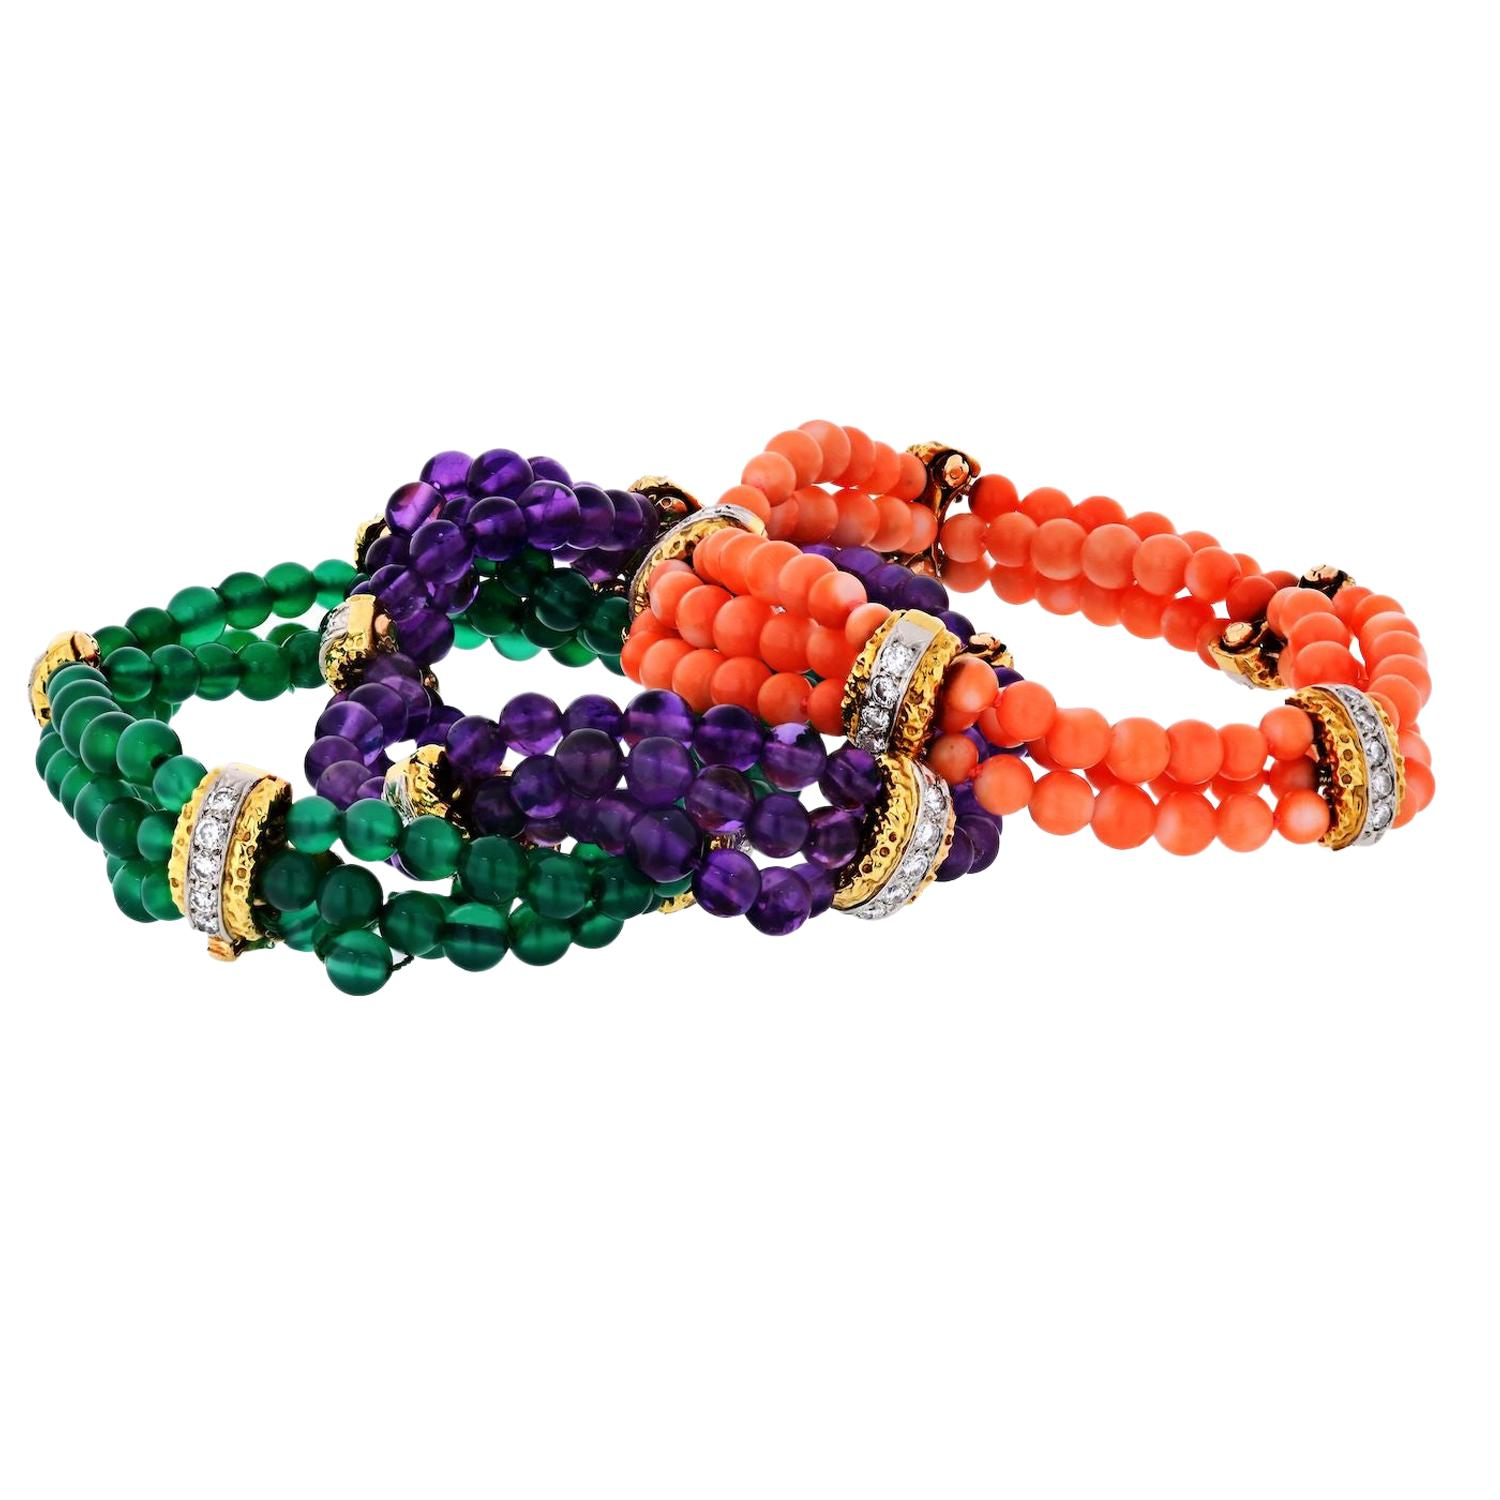 Van Cleef & Arpels Set of Three Coral, Chalcedony and Amethyst Bracelets